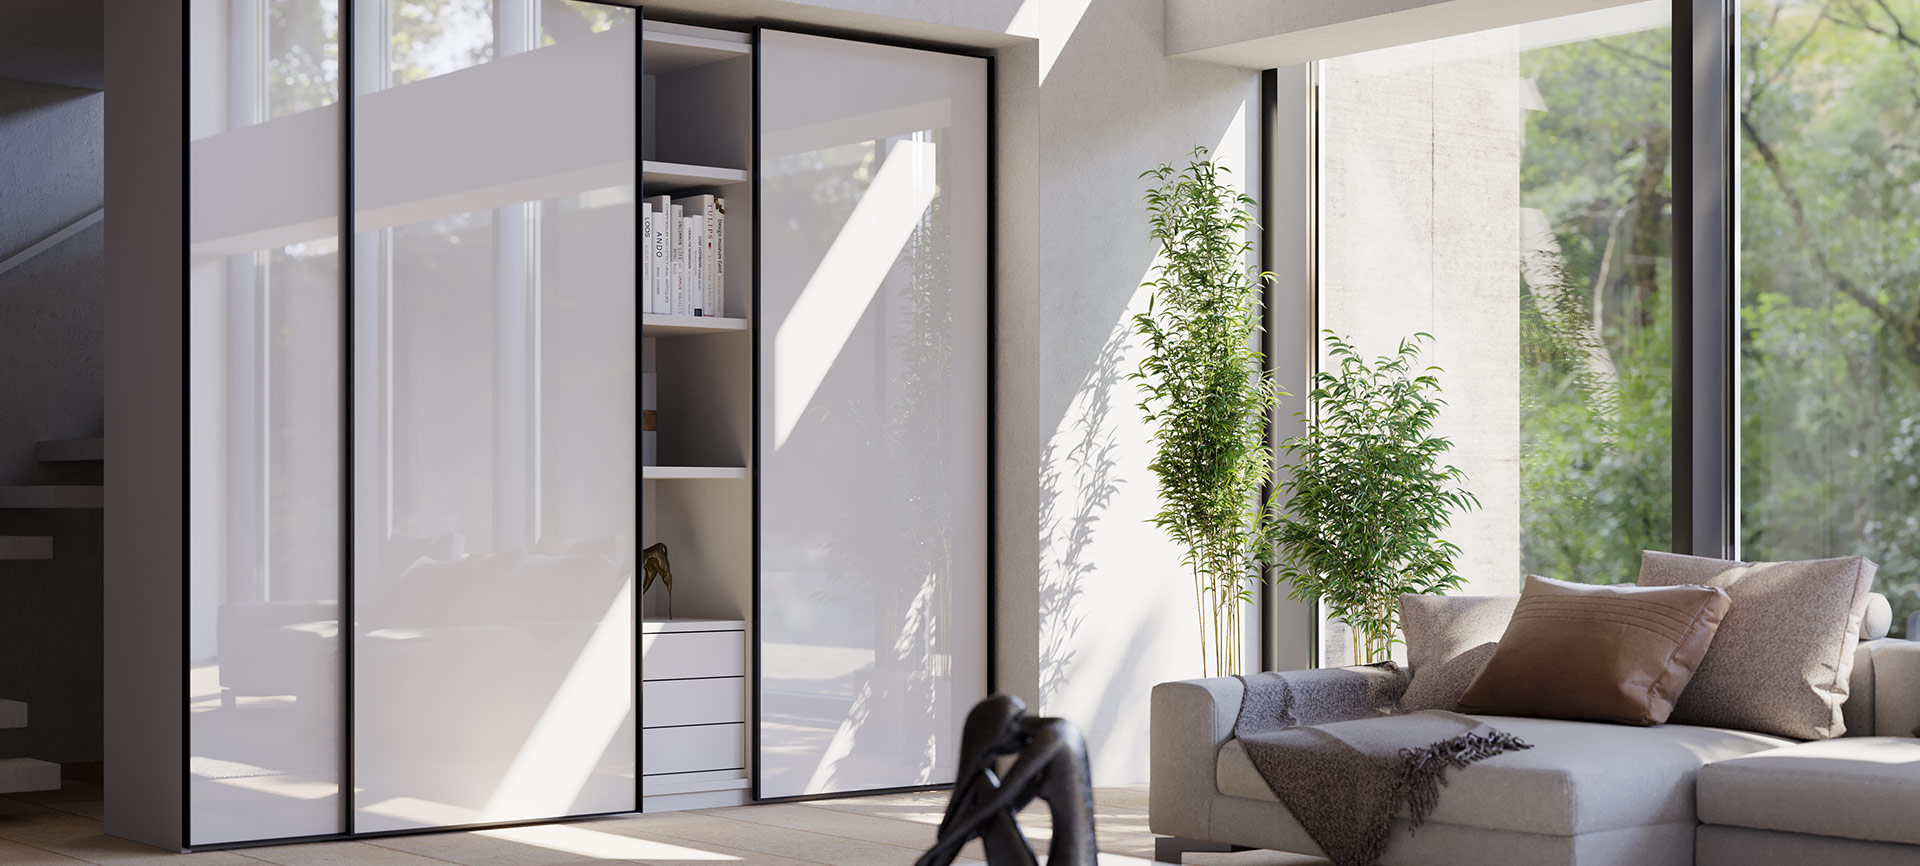 Sliding system for wardrobes with overlapping doors